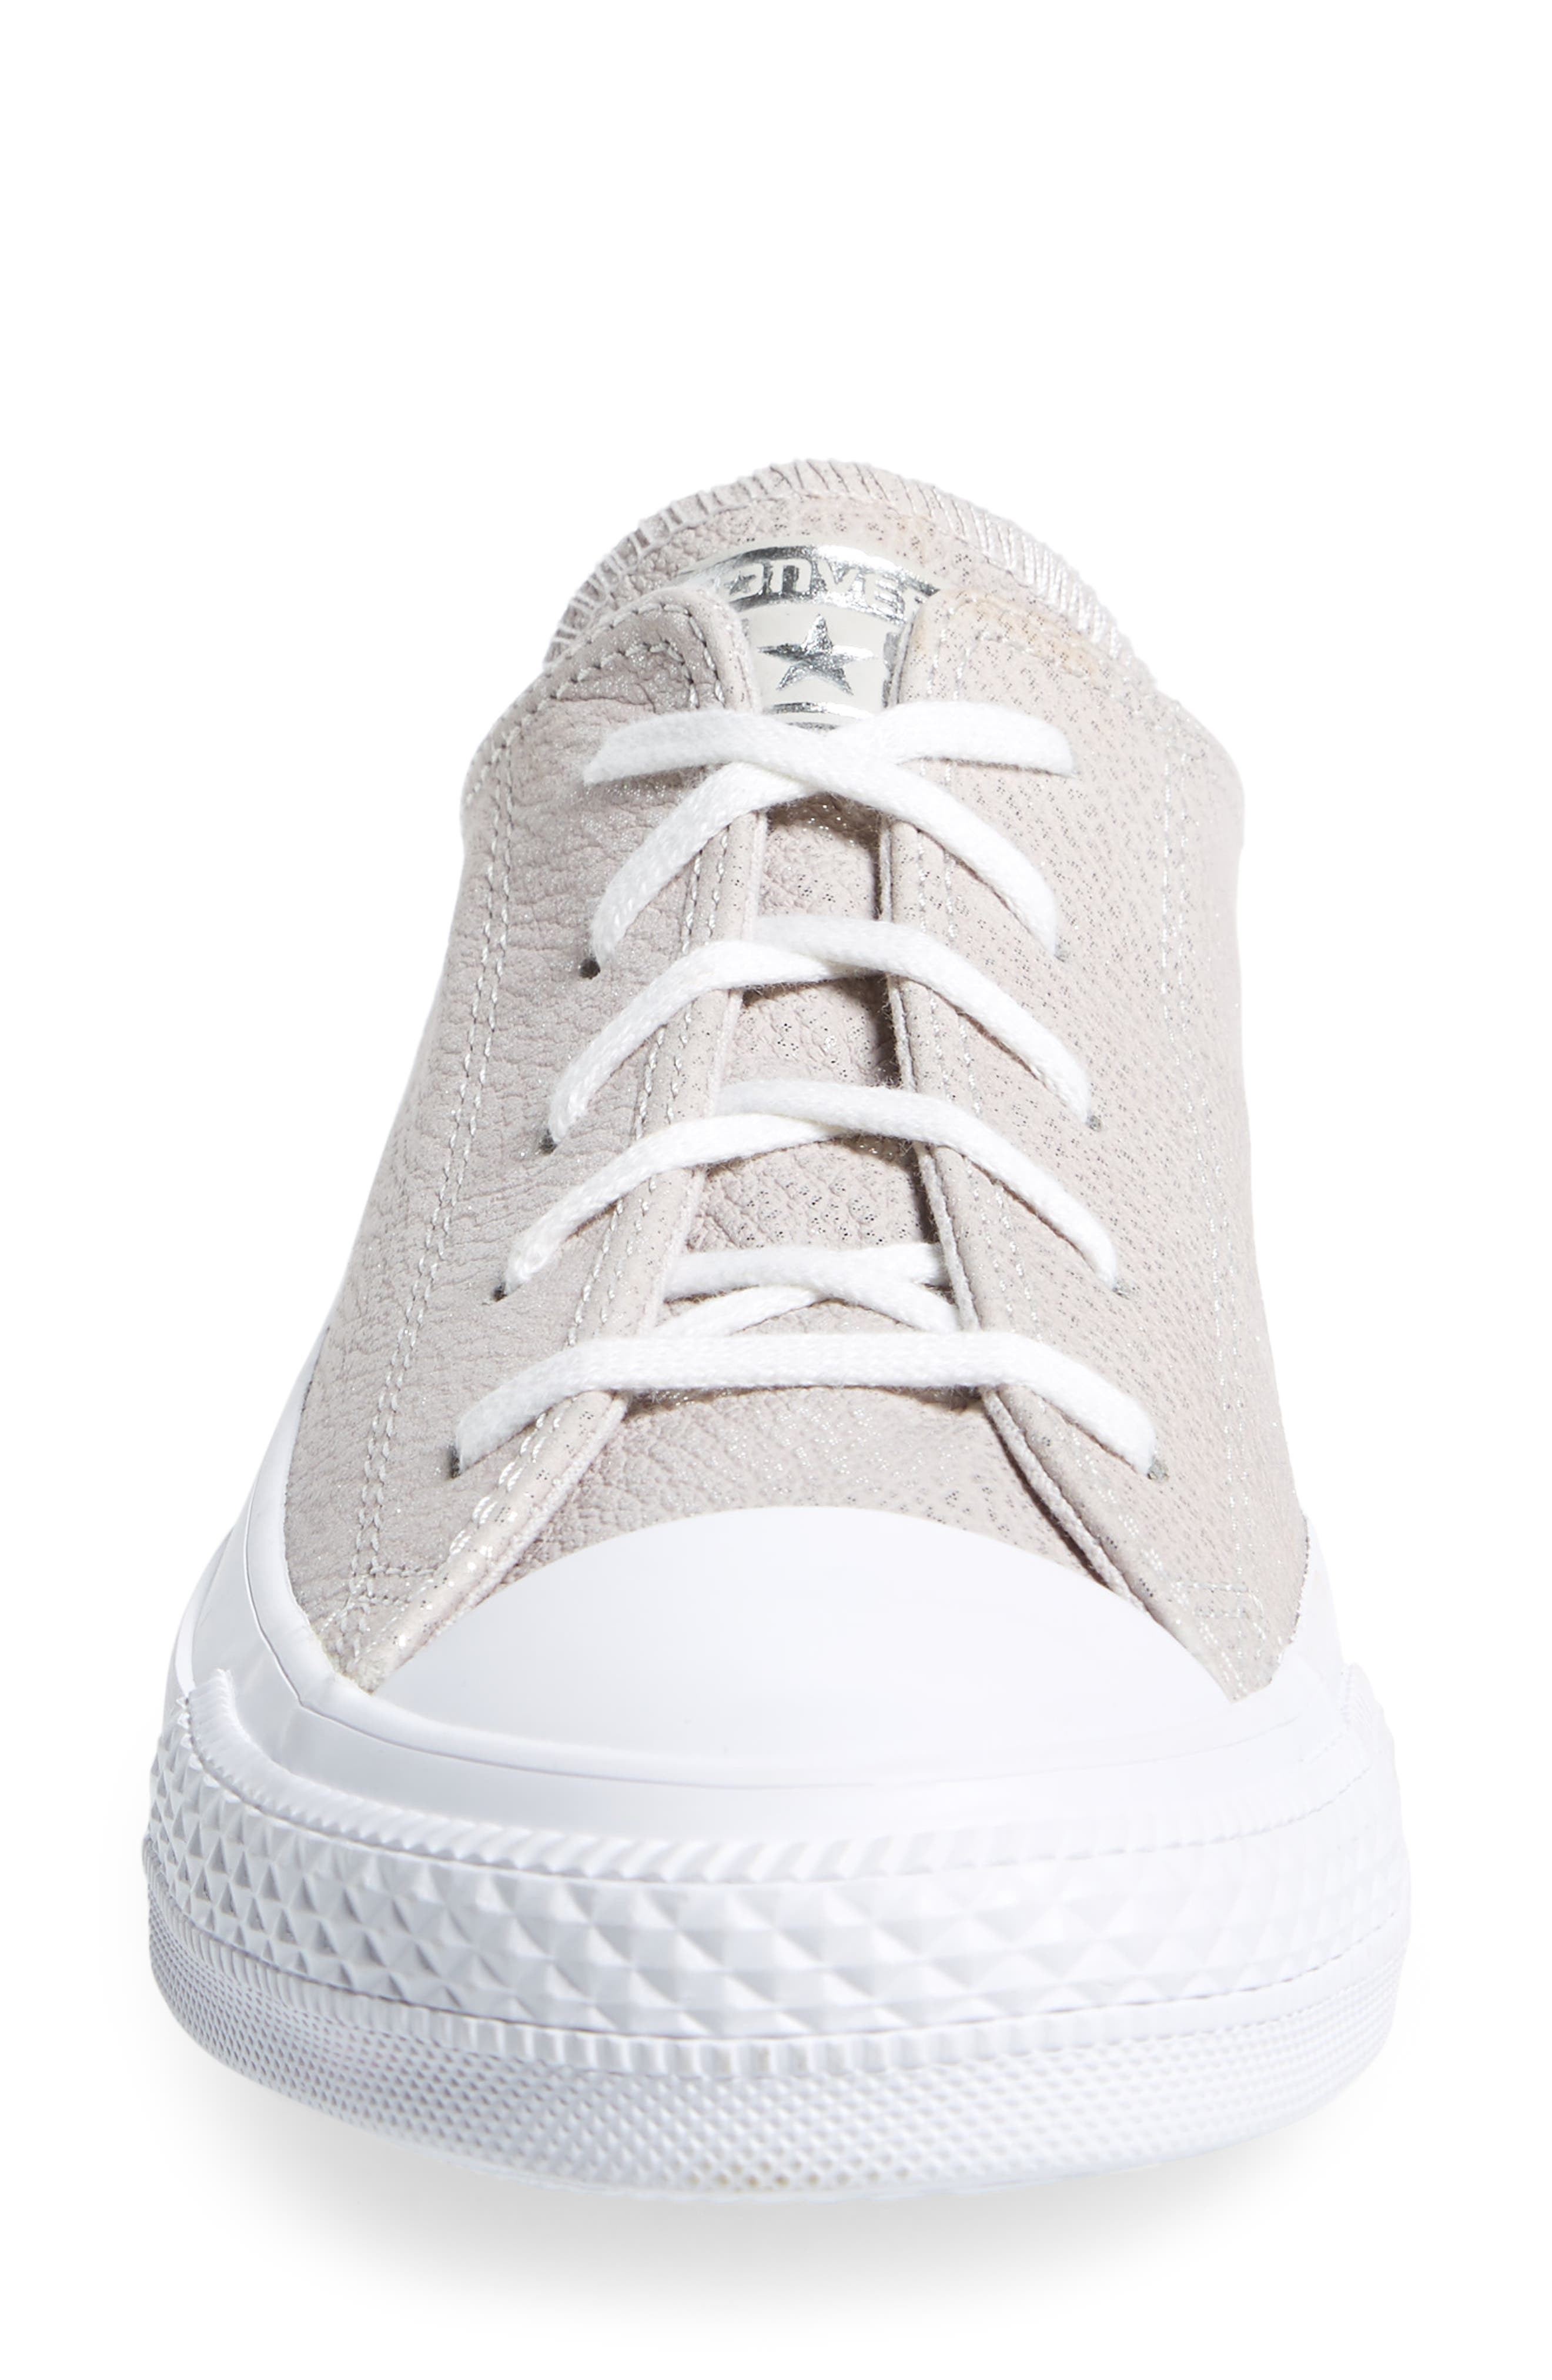 Chuck Taylor<sup>®</sup> All Star<sup>®</sup> Tipped Metallic Low Top Sneaker,                             Alternate thumbnail 4, color,                             Pale Putty